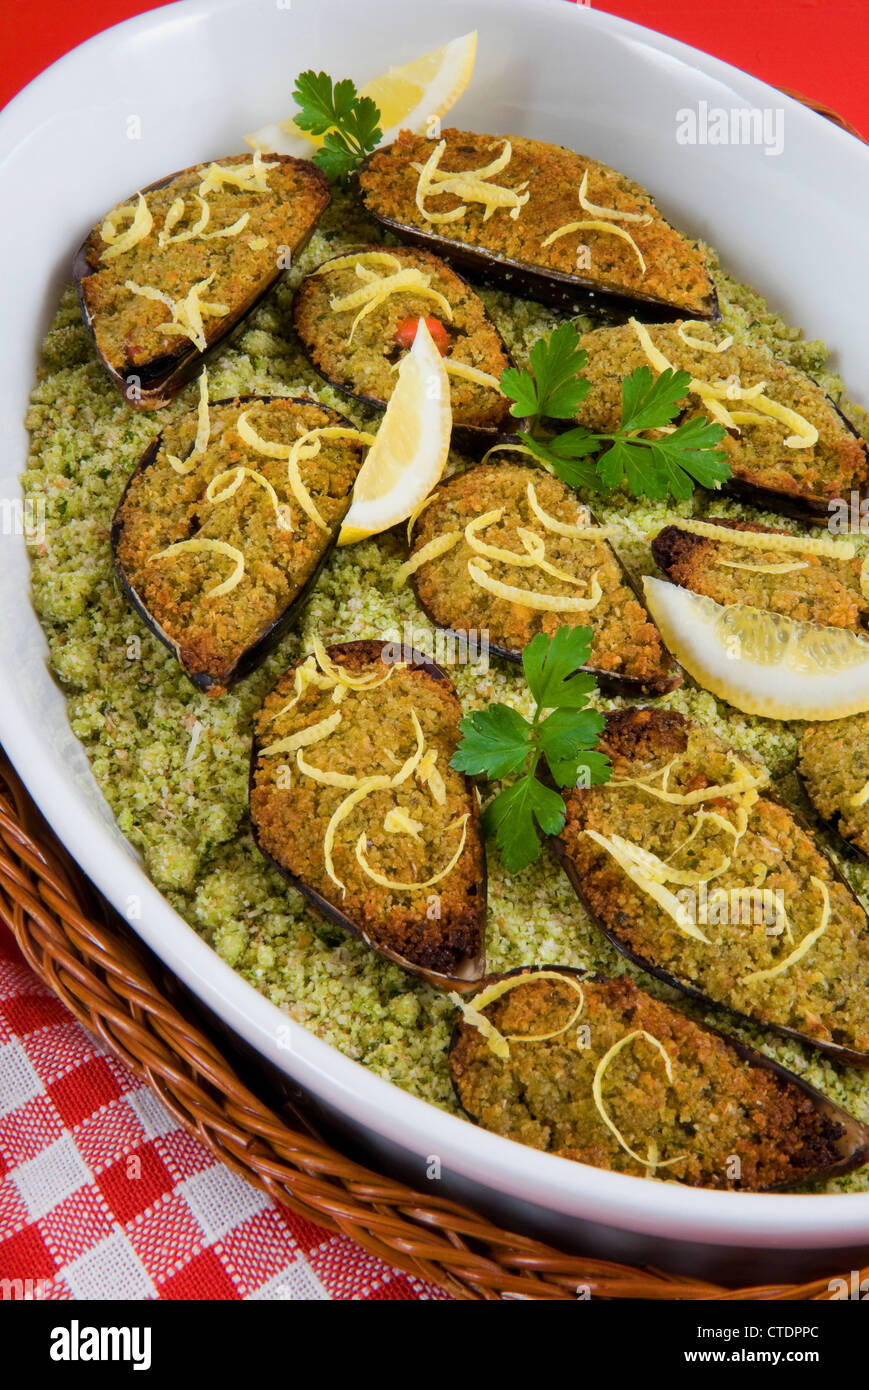 Stuffed mussels au gratin (Mytilus galloprovincialis) - Stock Image